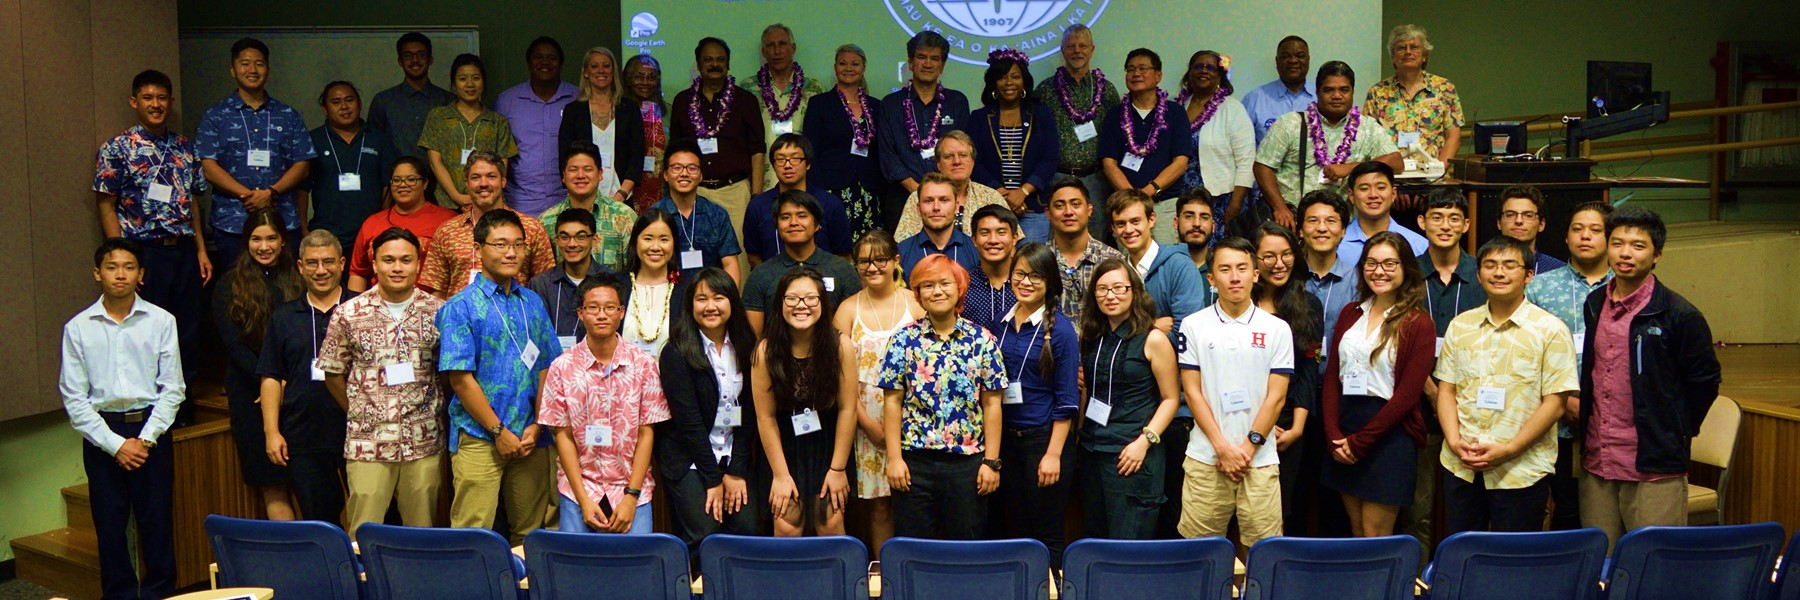 Group Photo Of HESTEMP Participants.